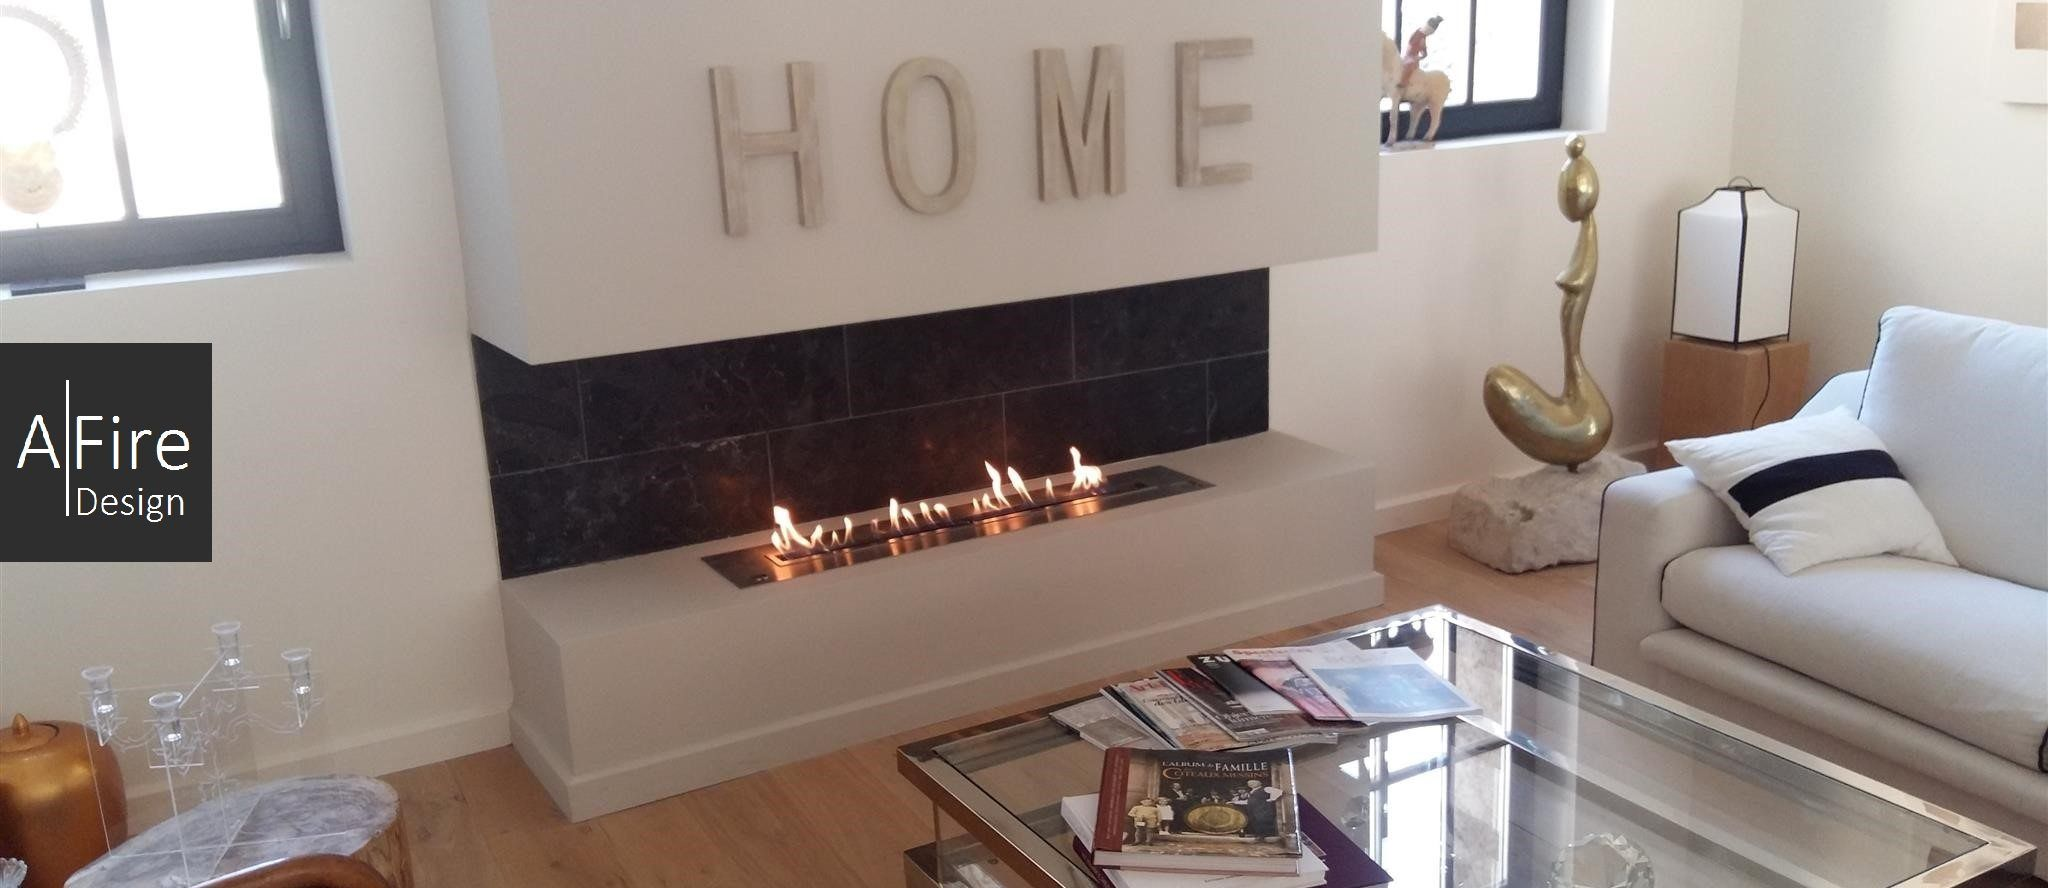 #EthanolFireplaces For Apartments And Townhouses AFIRE Design  #EthanolBurnerInsert With Electronic Ignition Https:/